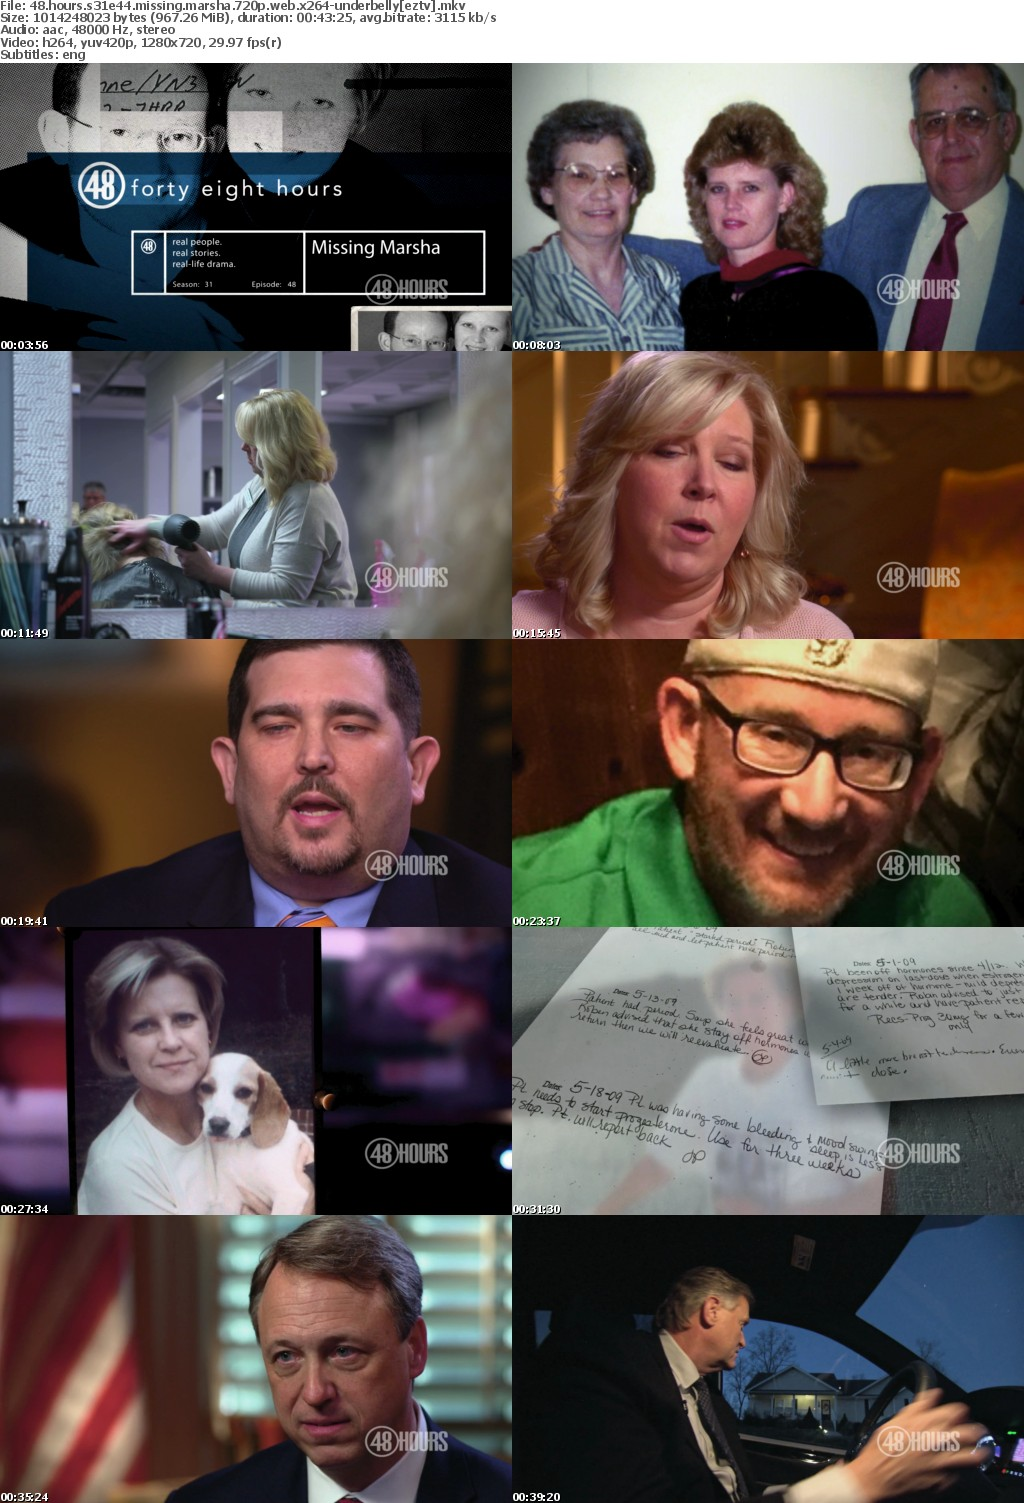 48 Hours S31E44 Missing Marsha 720p WEB x264 UNDERBELLY